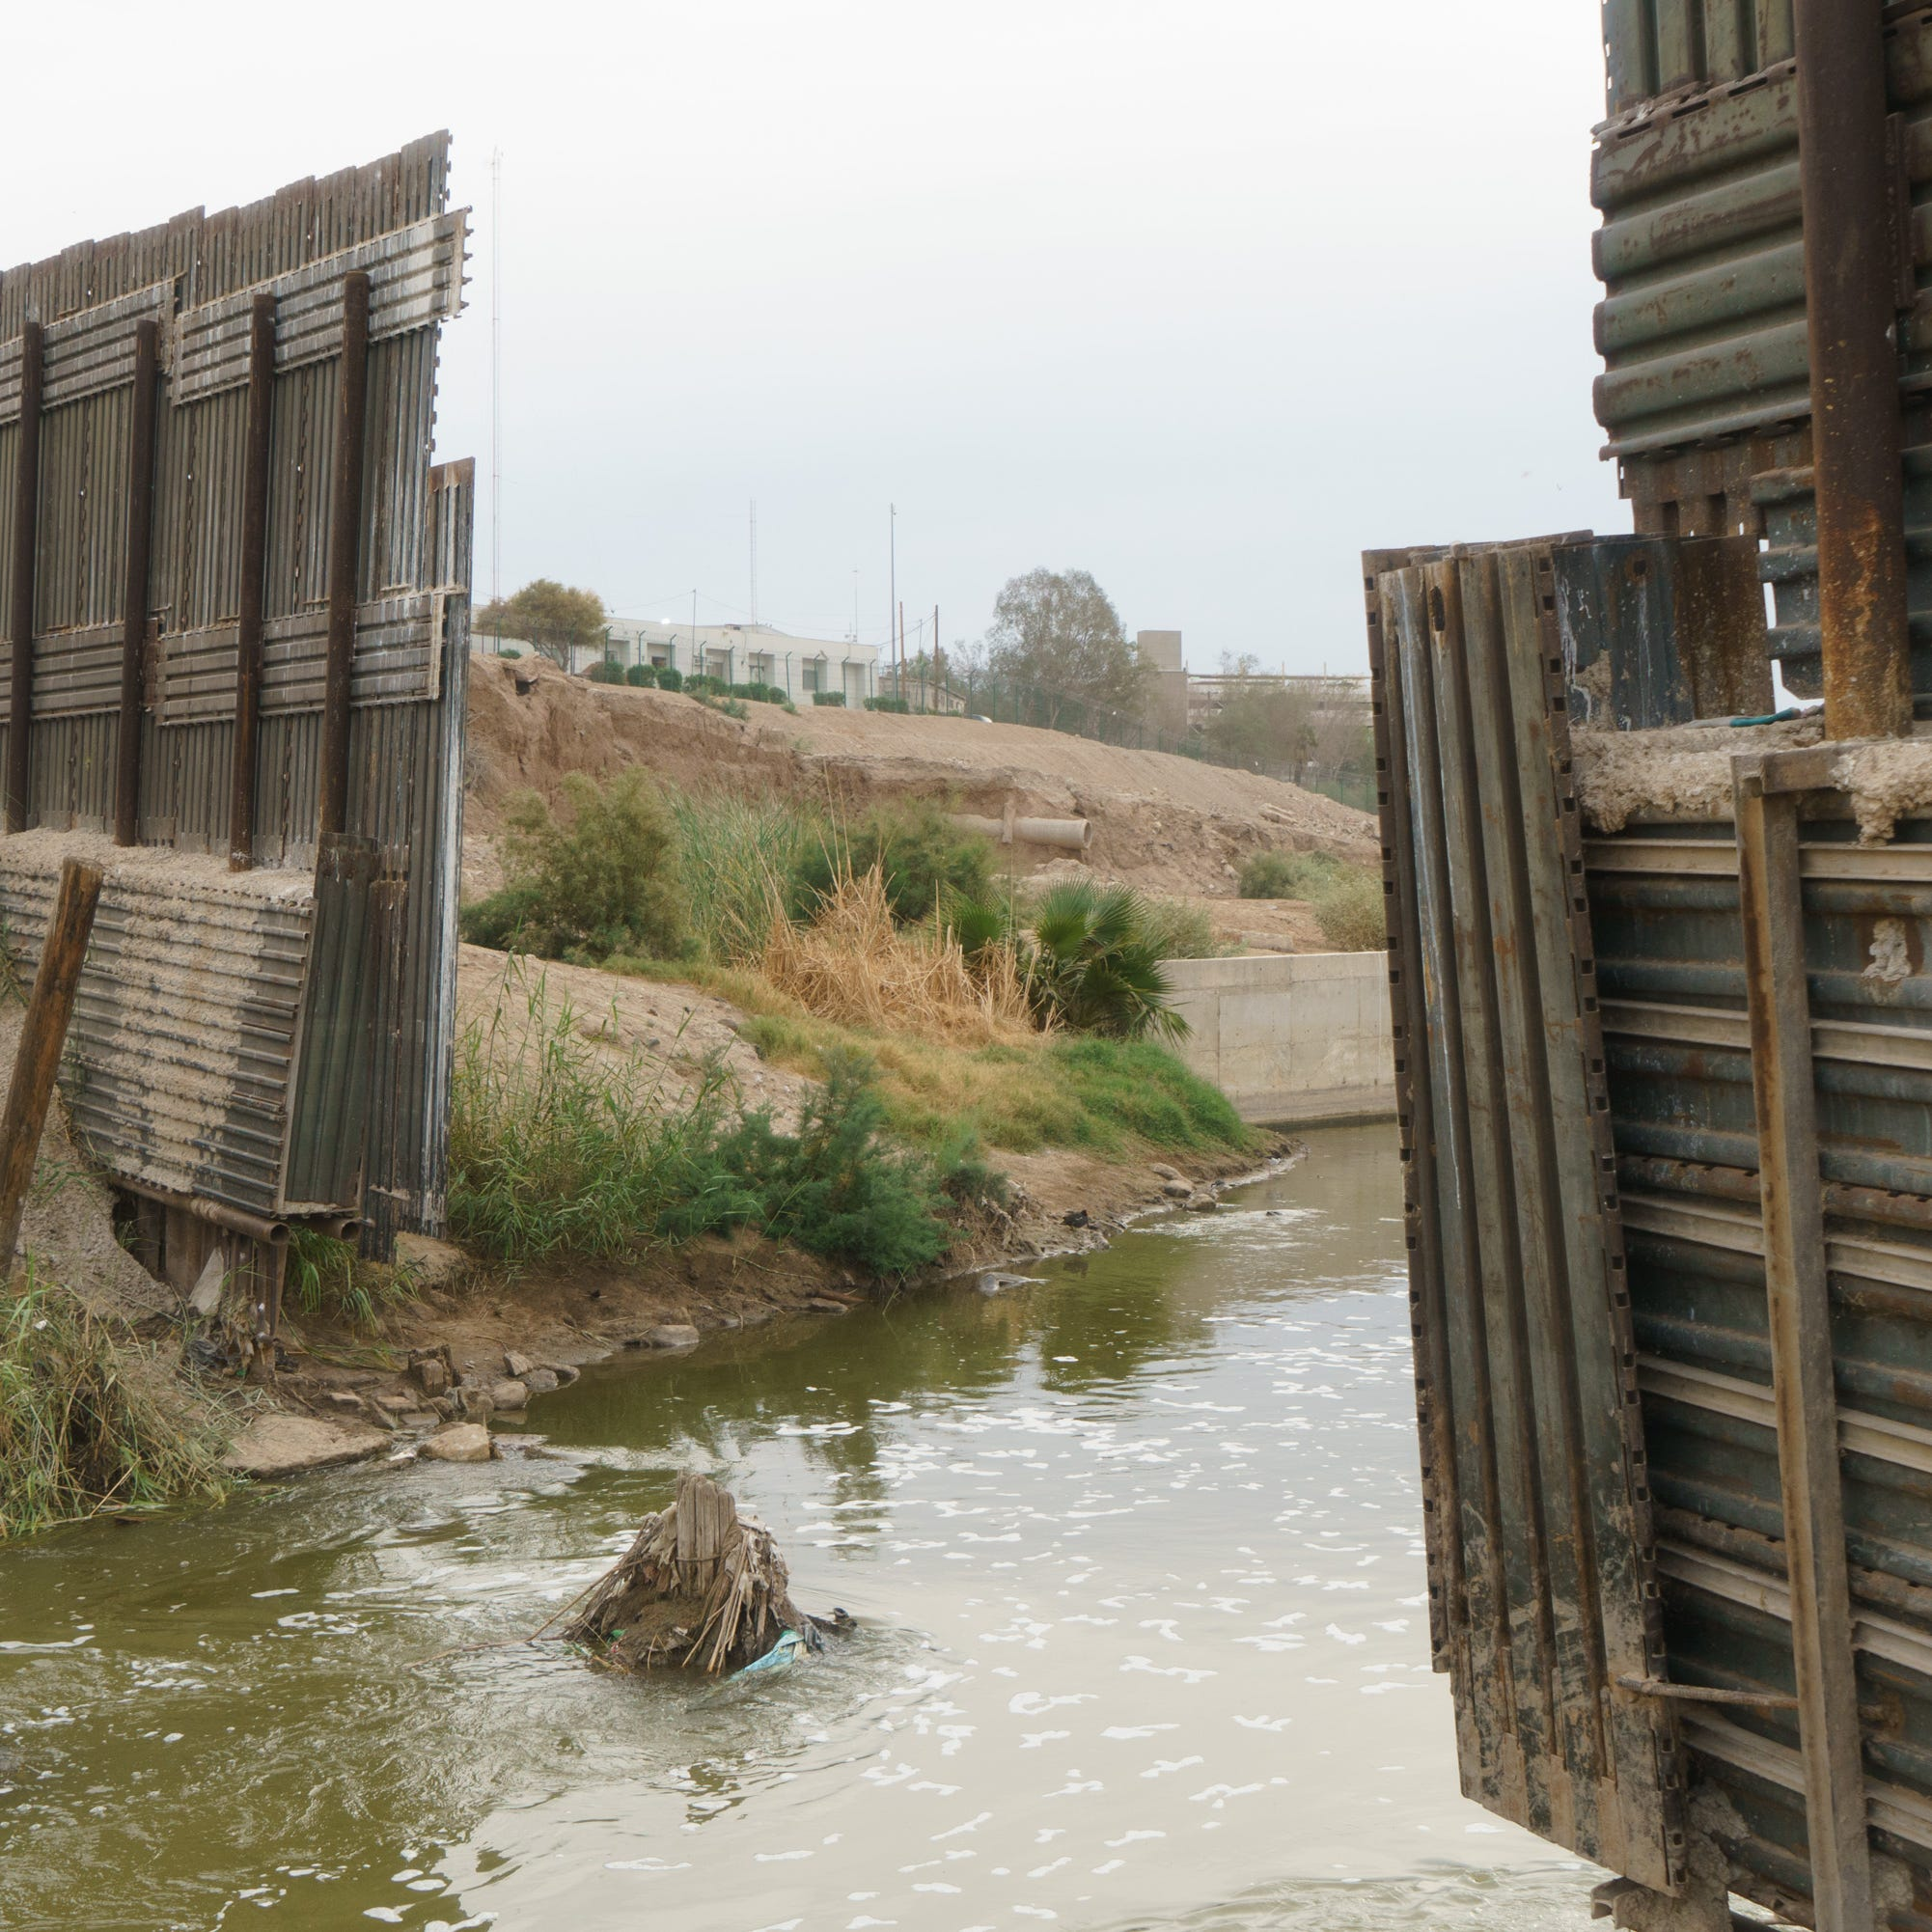 'A crisis of sewage': California lawmakers seek funding for the polluted New River